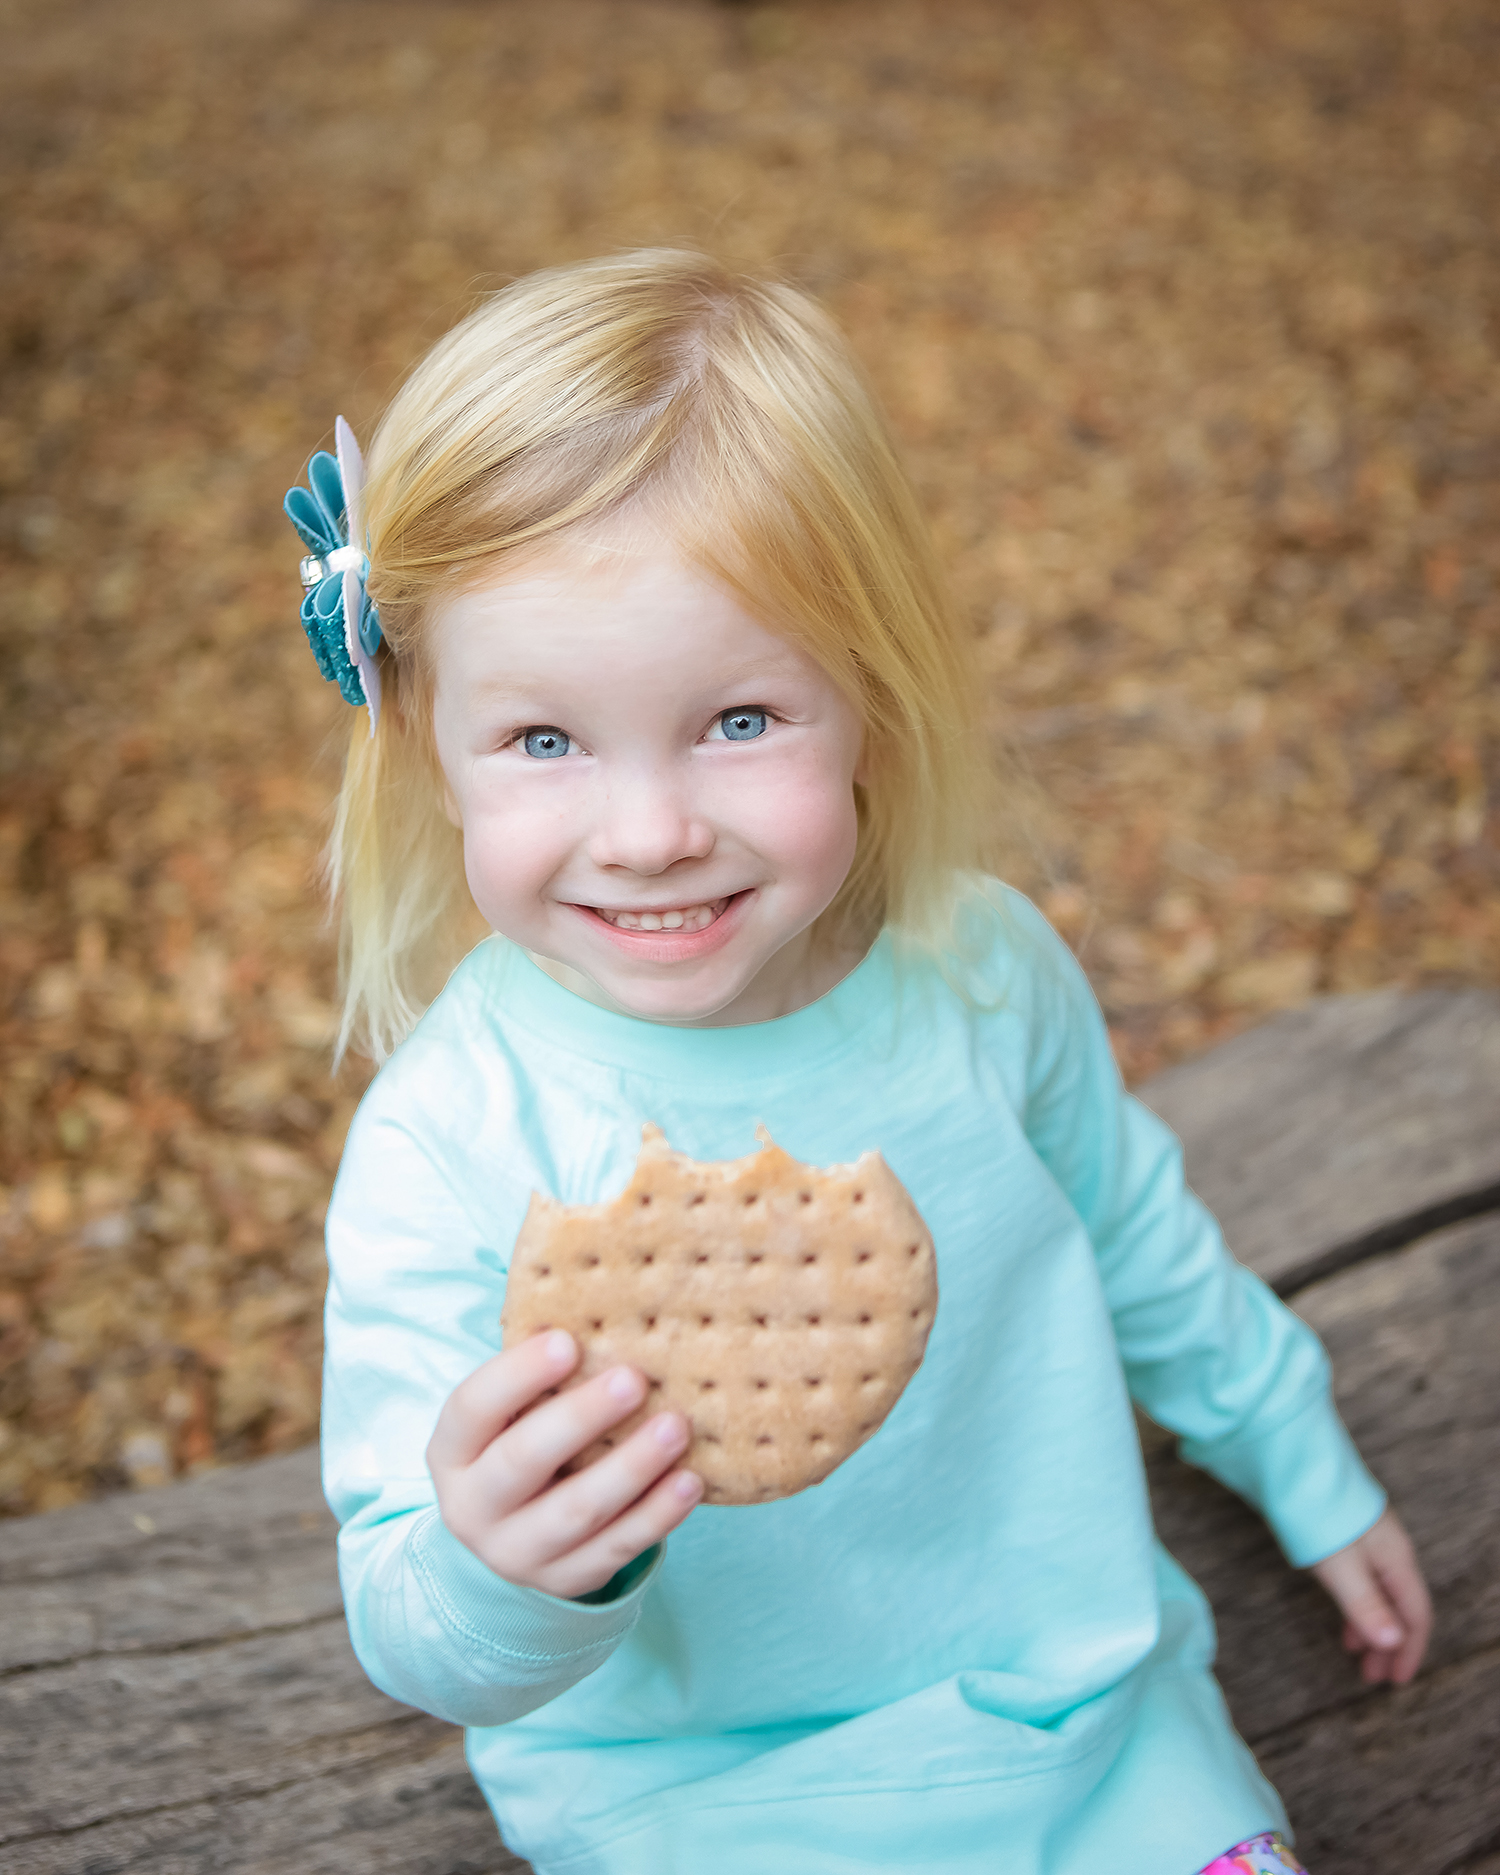 Looking for great toddler snack ideas? These multigrain buns are always a huge hit!